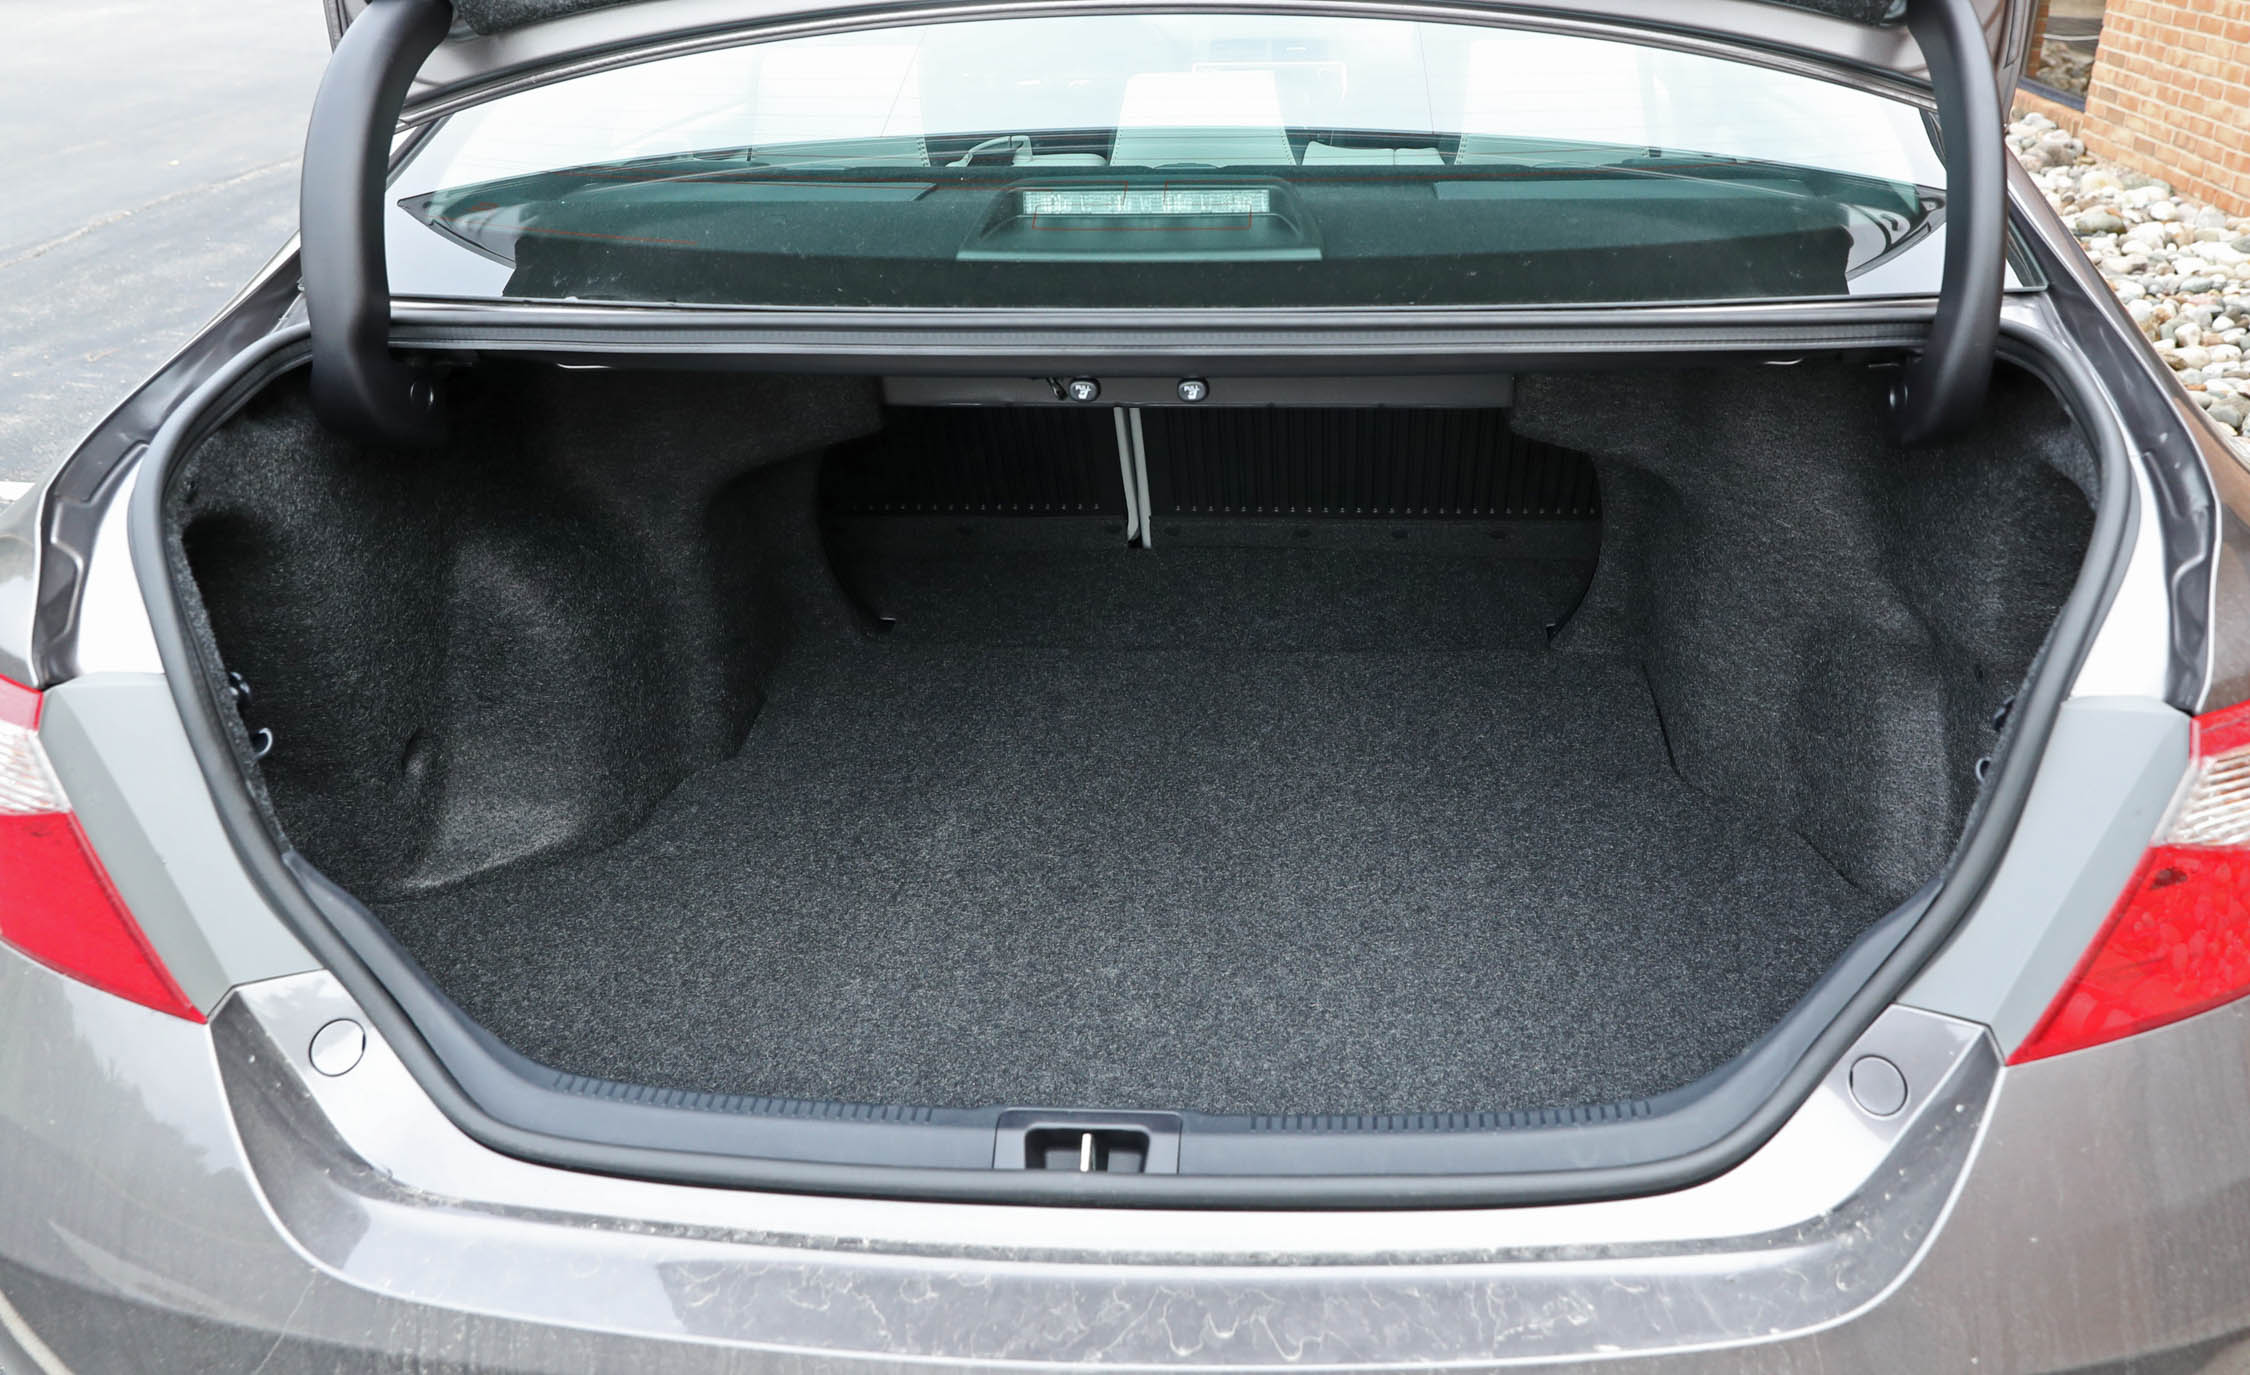 2017 Toyota Camry Interior View Cargo Trunk (View 14 of 37)